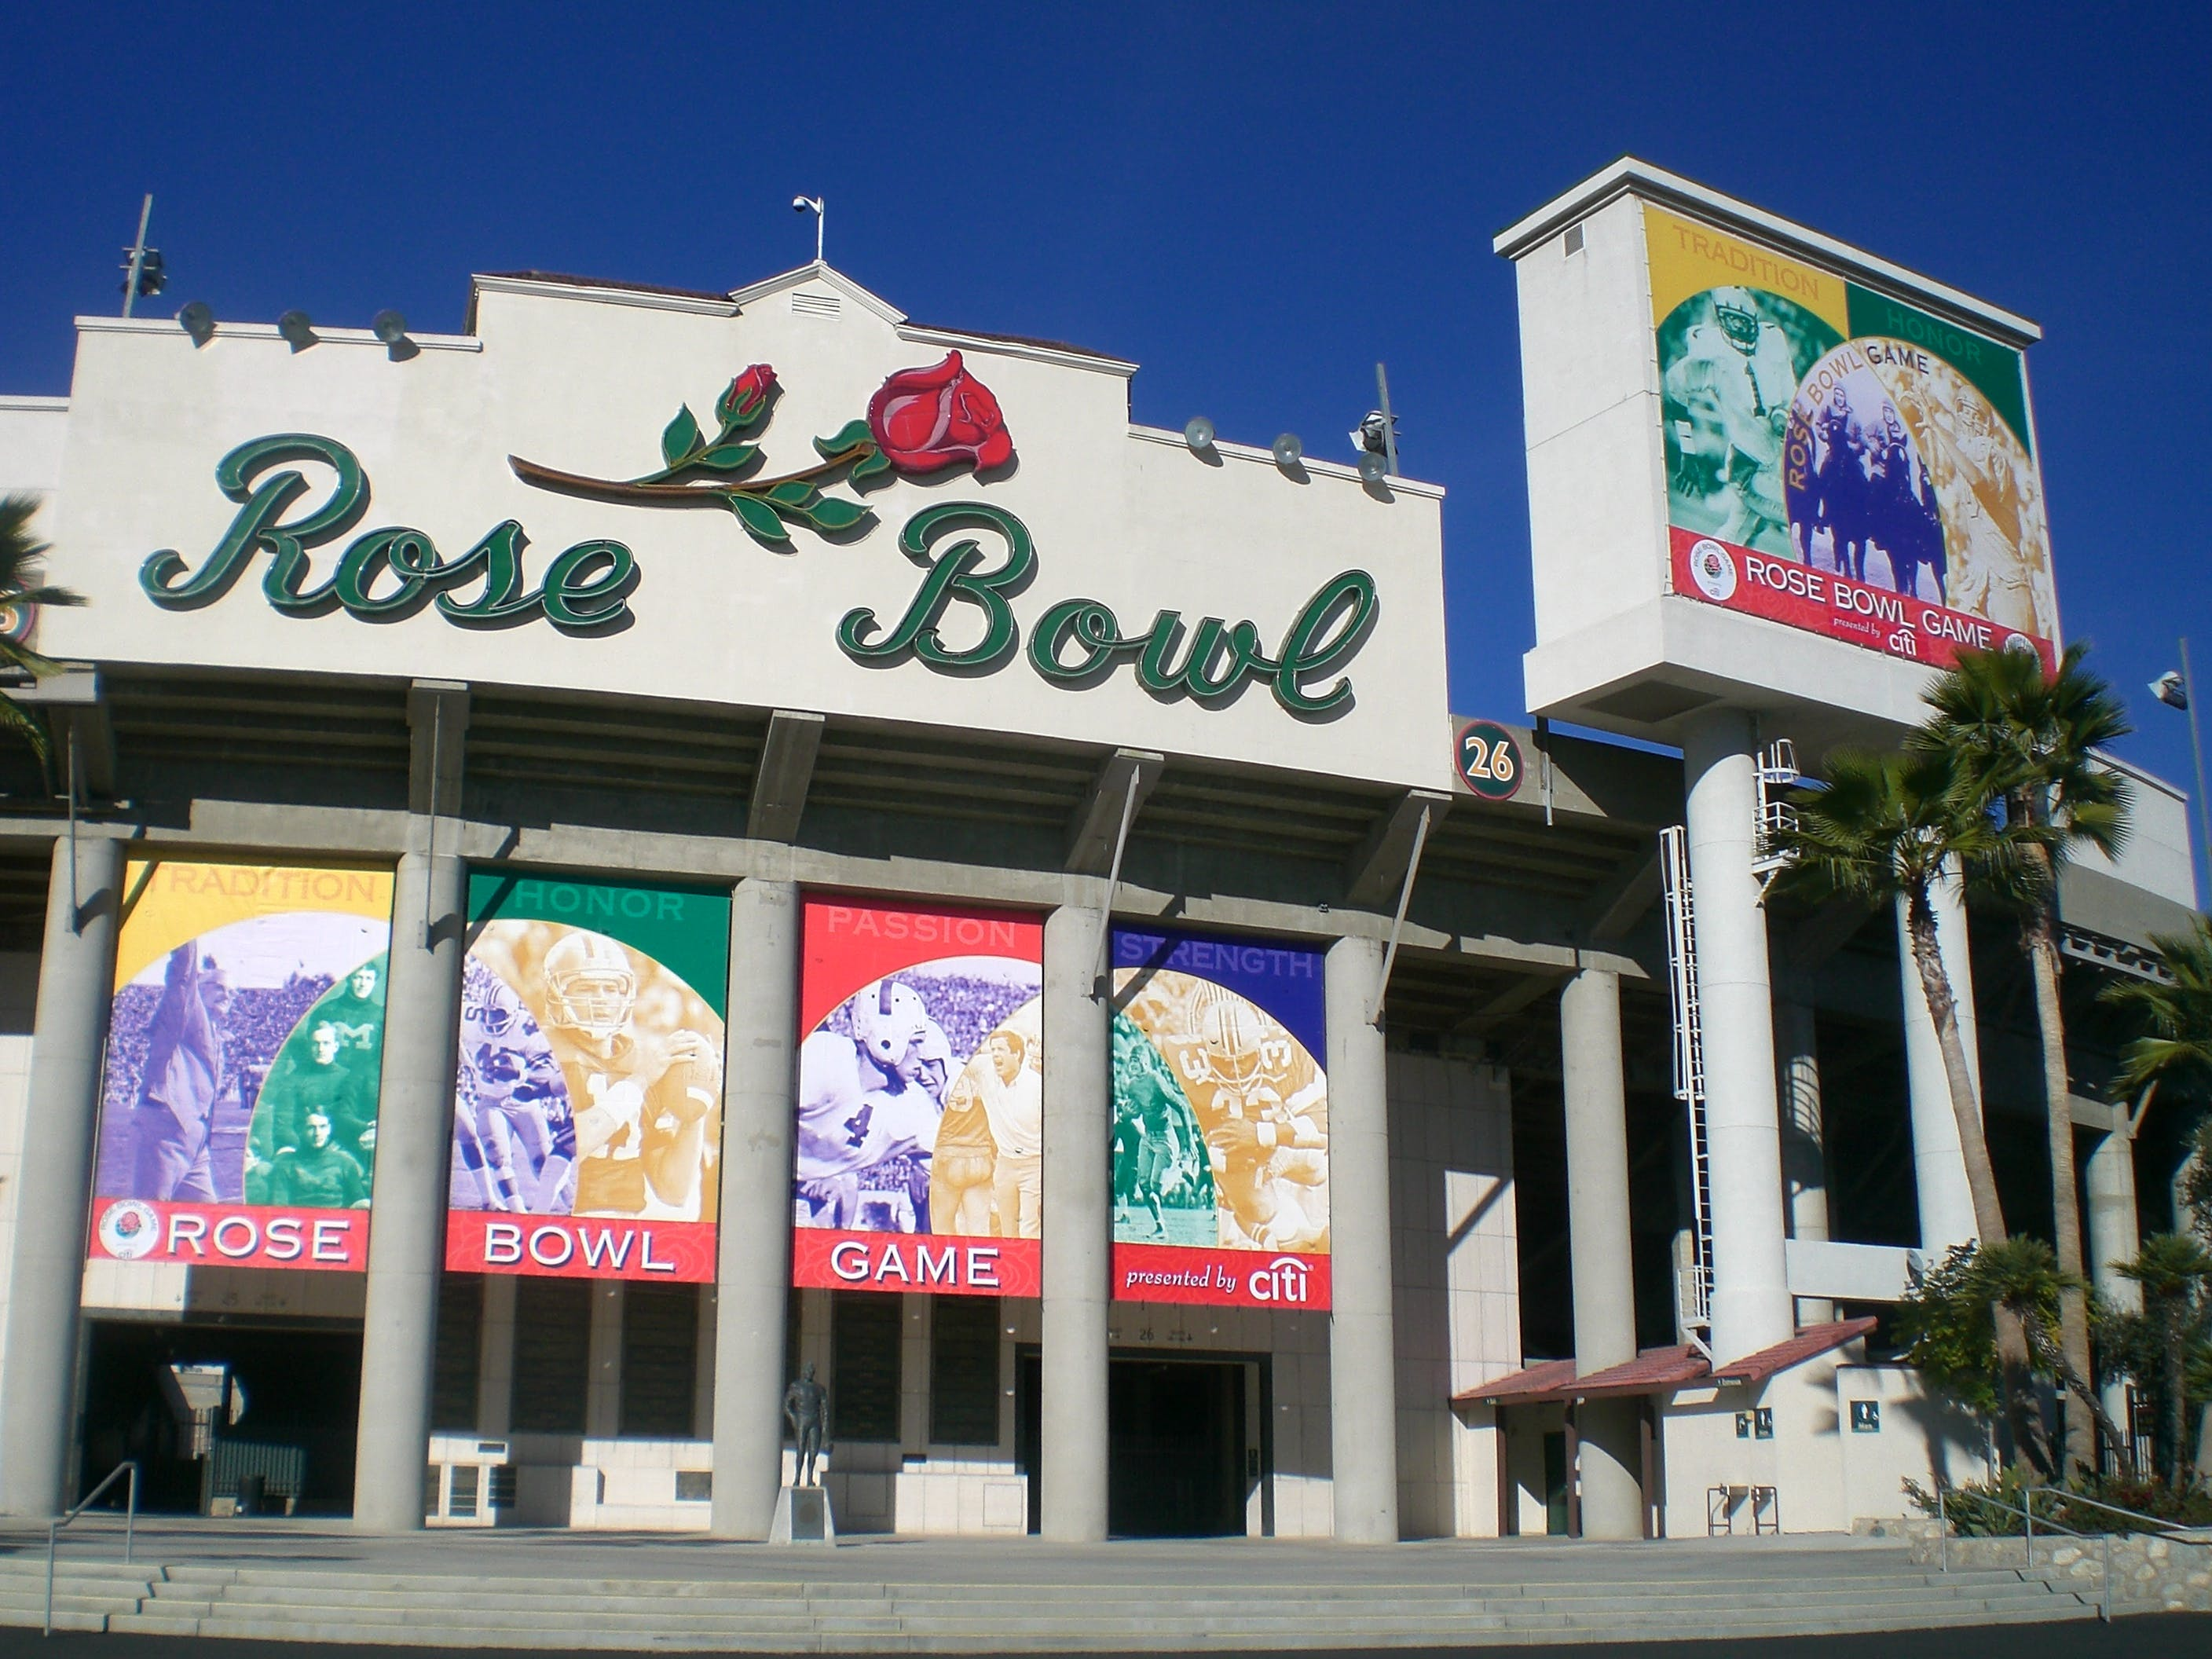 ROSE BOWL DECOR - VINYL BANNERS - sold by AAA FLAG & BANNER MFG. CO.